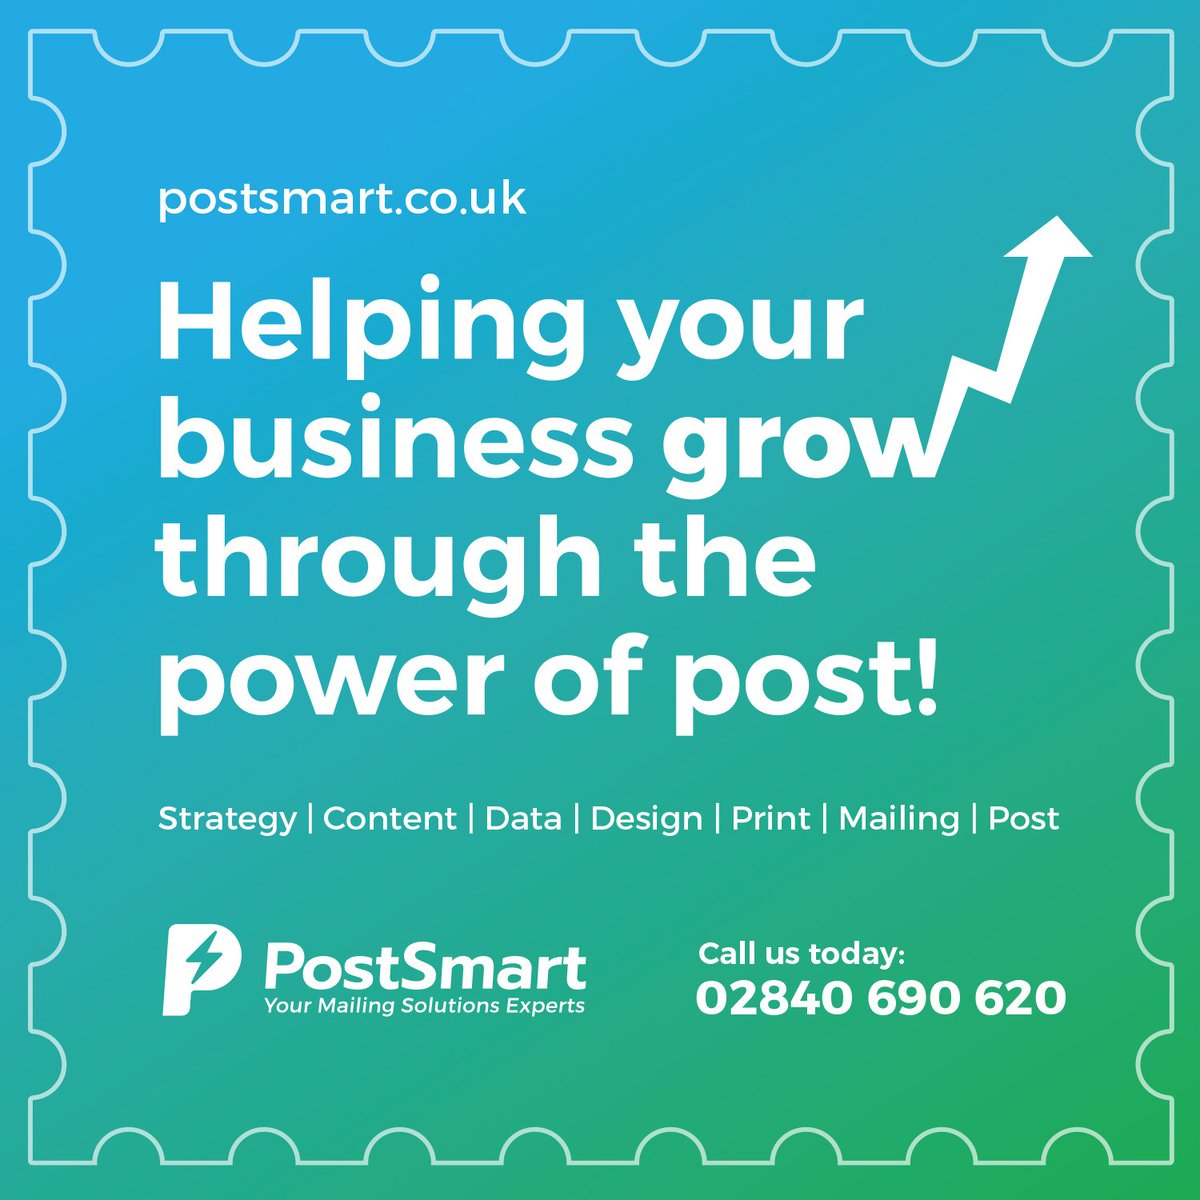 Did you enjoy watching #Wimbledon? We loved seeing the competition unfold! For the competitive edge in your next campaign. Let's talk about the power of #directmail @PostsmartLtd   @smallbusinessuk #smallbusiness #startup #funding #growyourbusiness